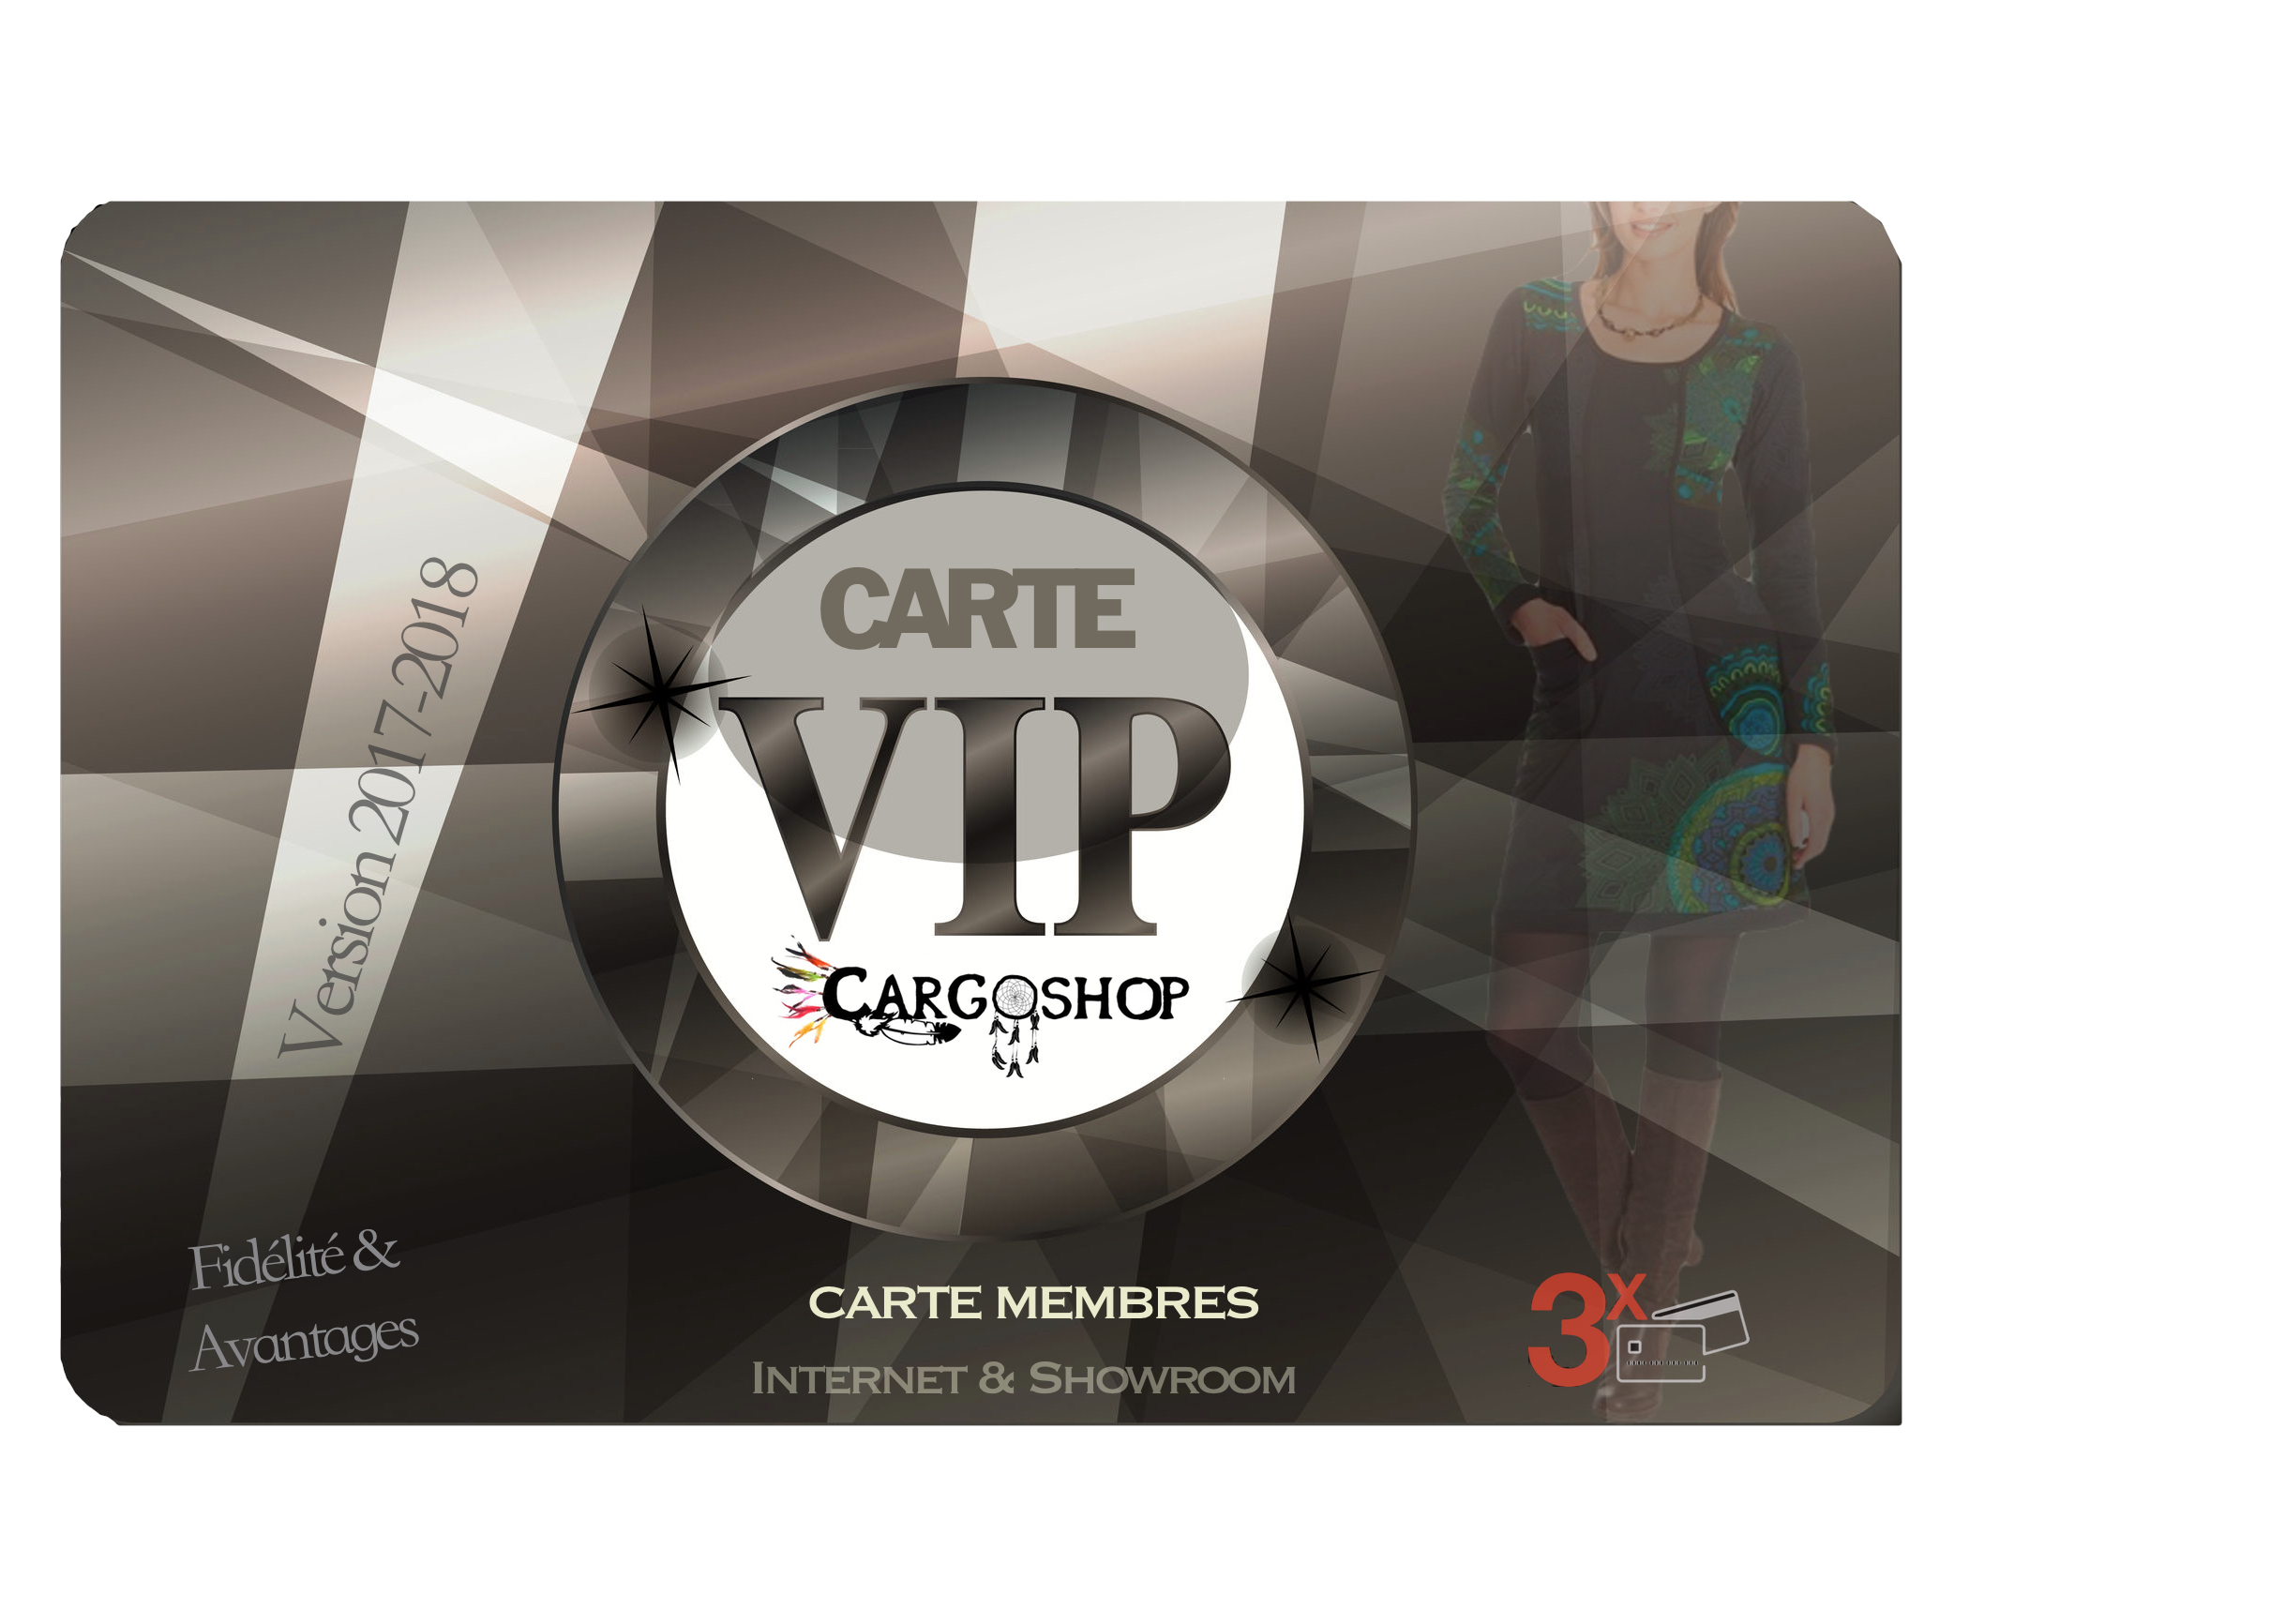 CARTE_VIP_internet__showroom